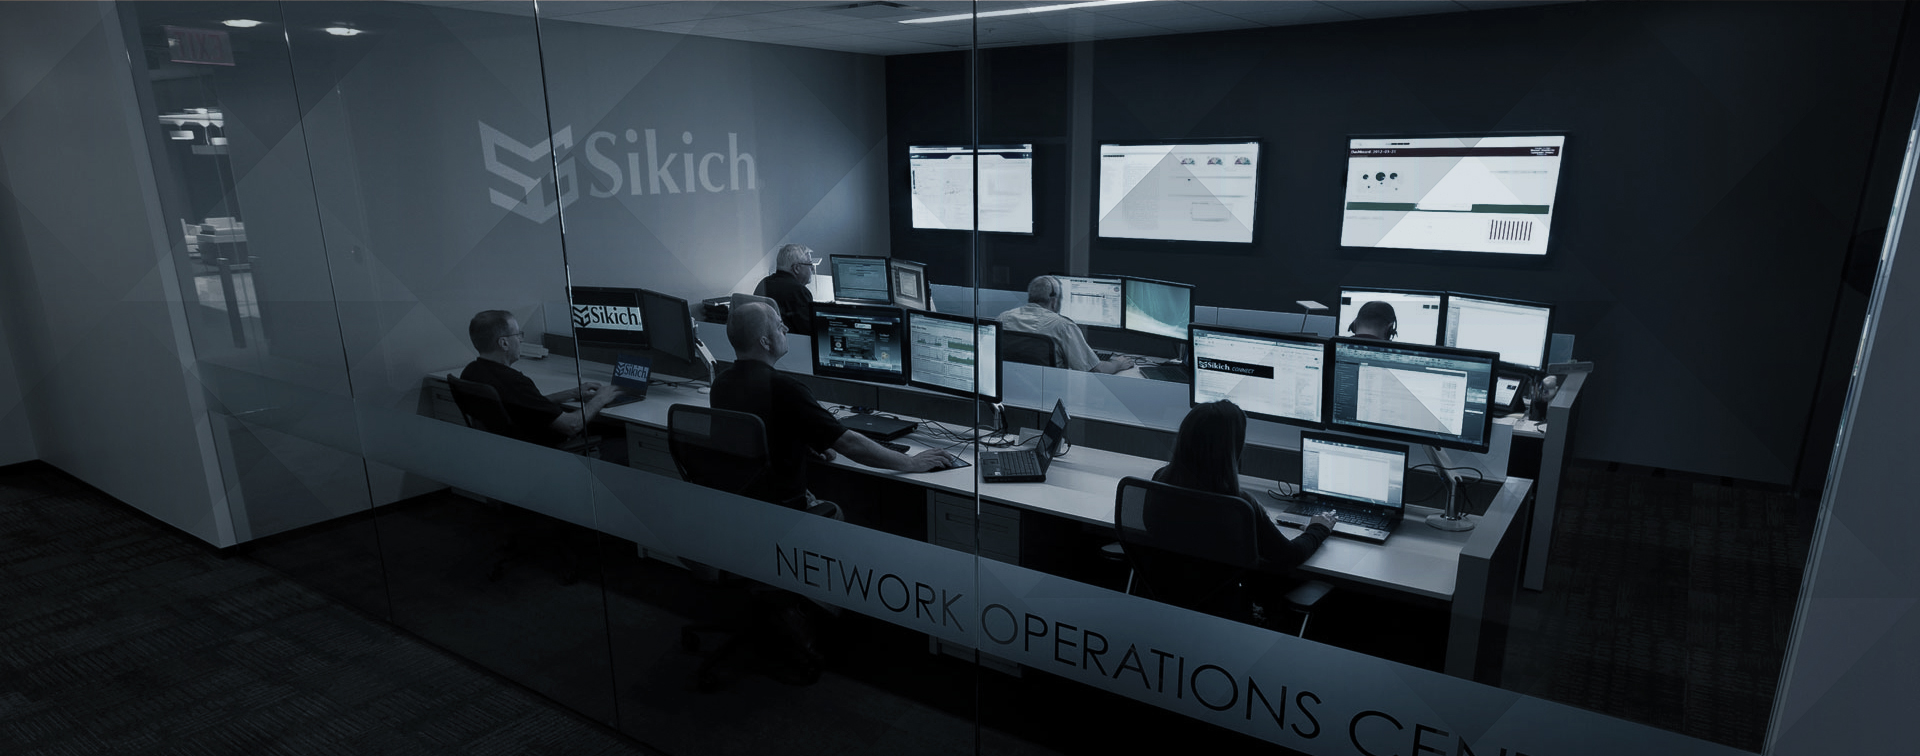 sikich-tech-managed-services